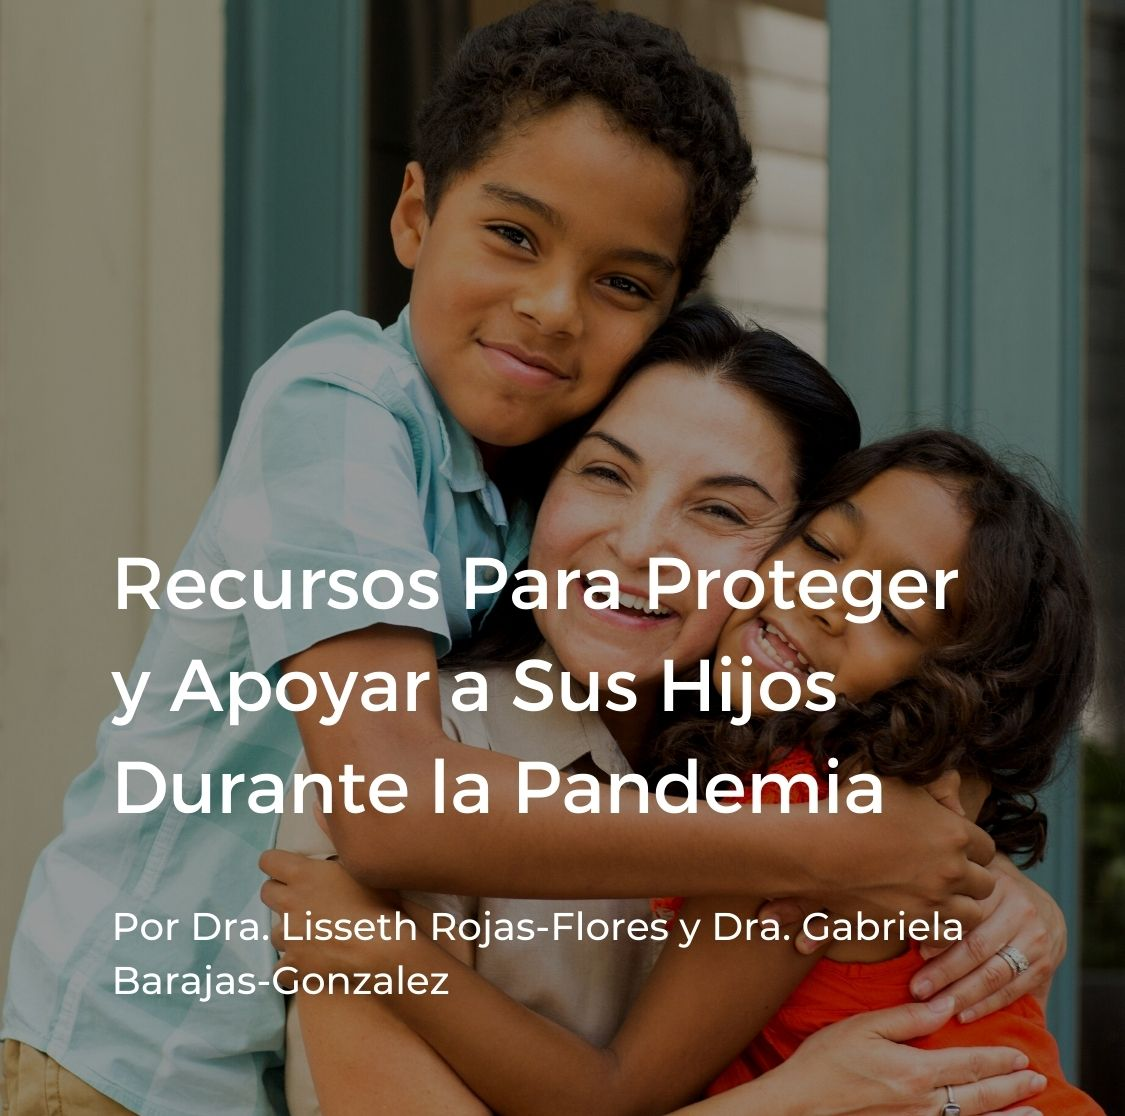 Cover for Spanish webinar on parenting during COVID-19